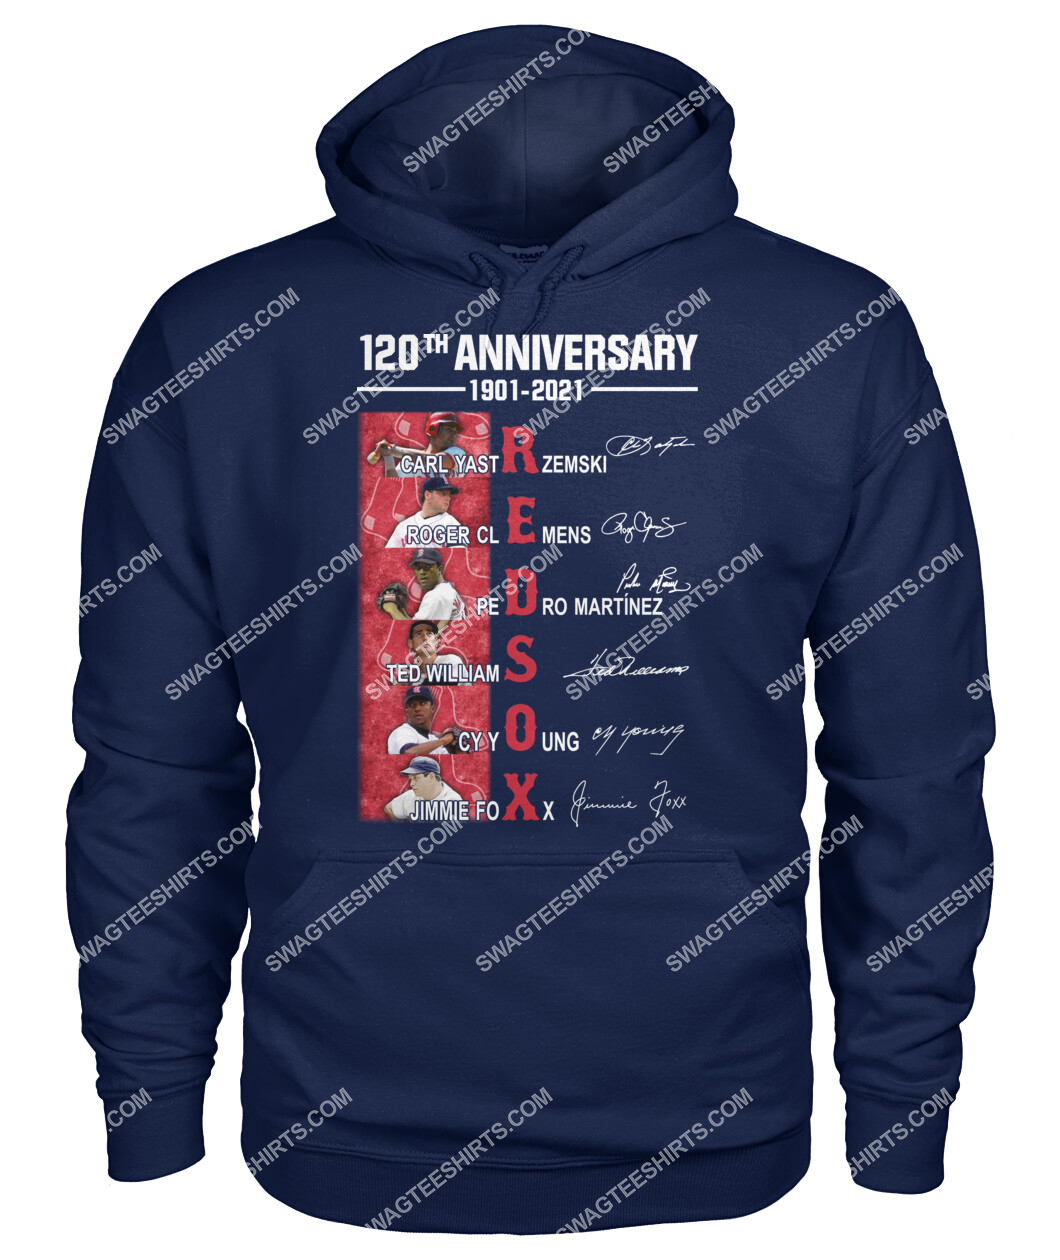 the boston red sox 120th anniversary 1901 2021 signatures mlb hoodie 1